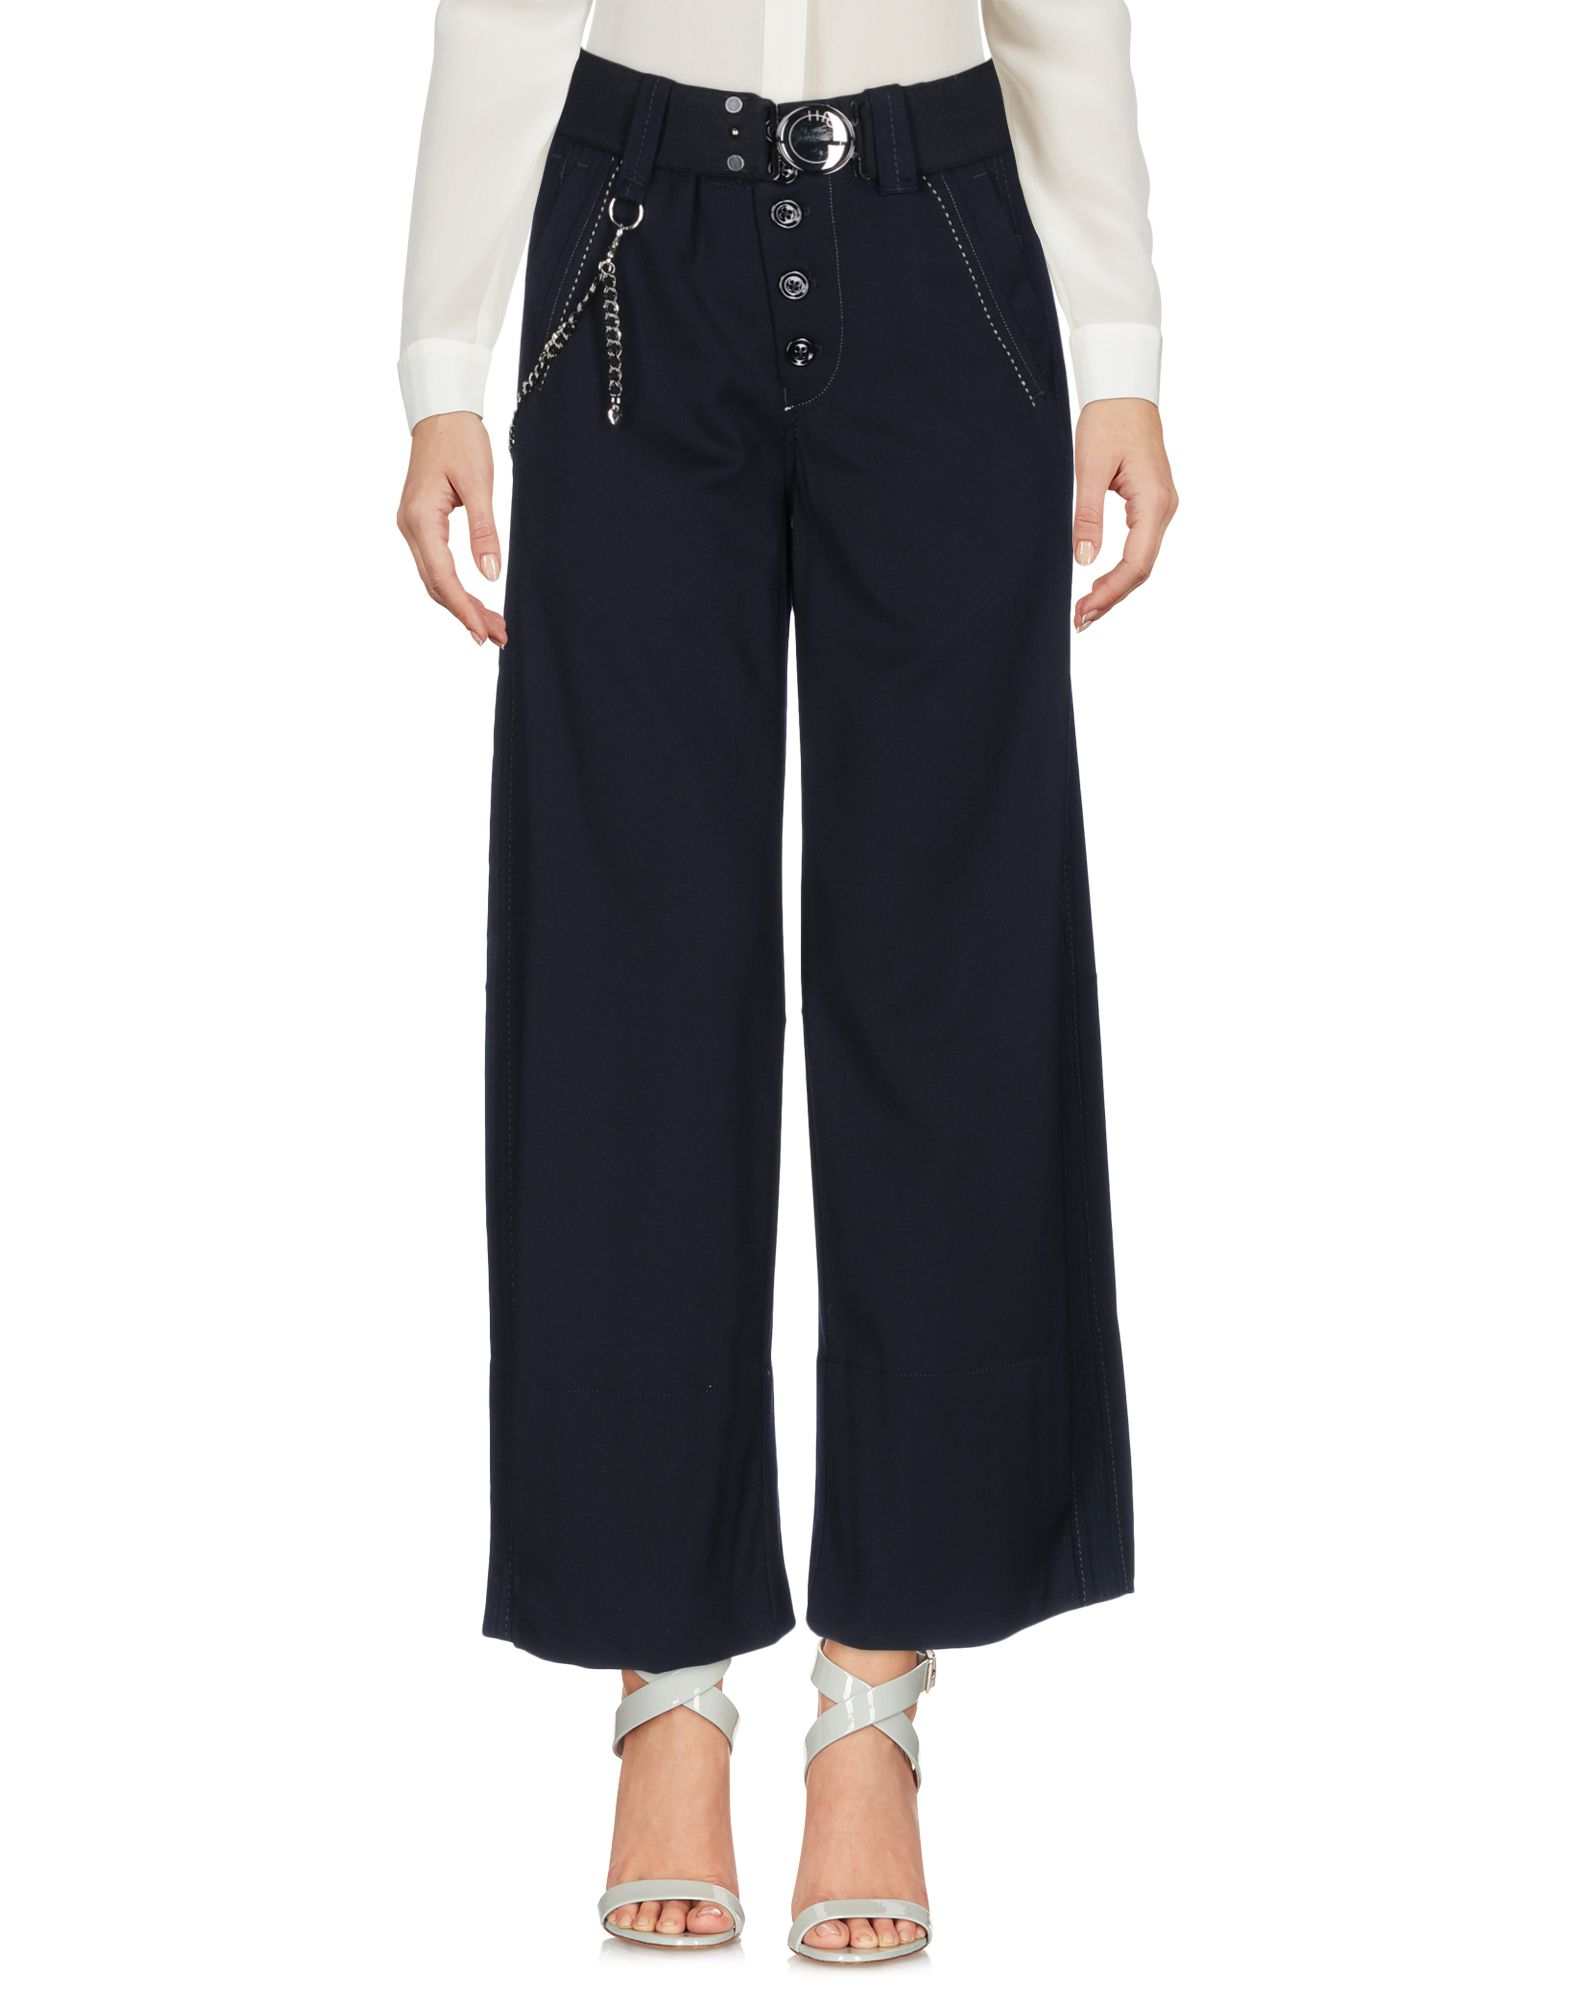 SOLD OUT Pantalone High Donna - Acquista online su ZRb2d